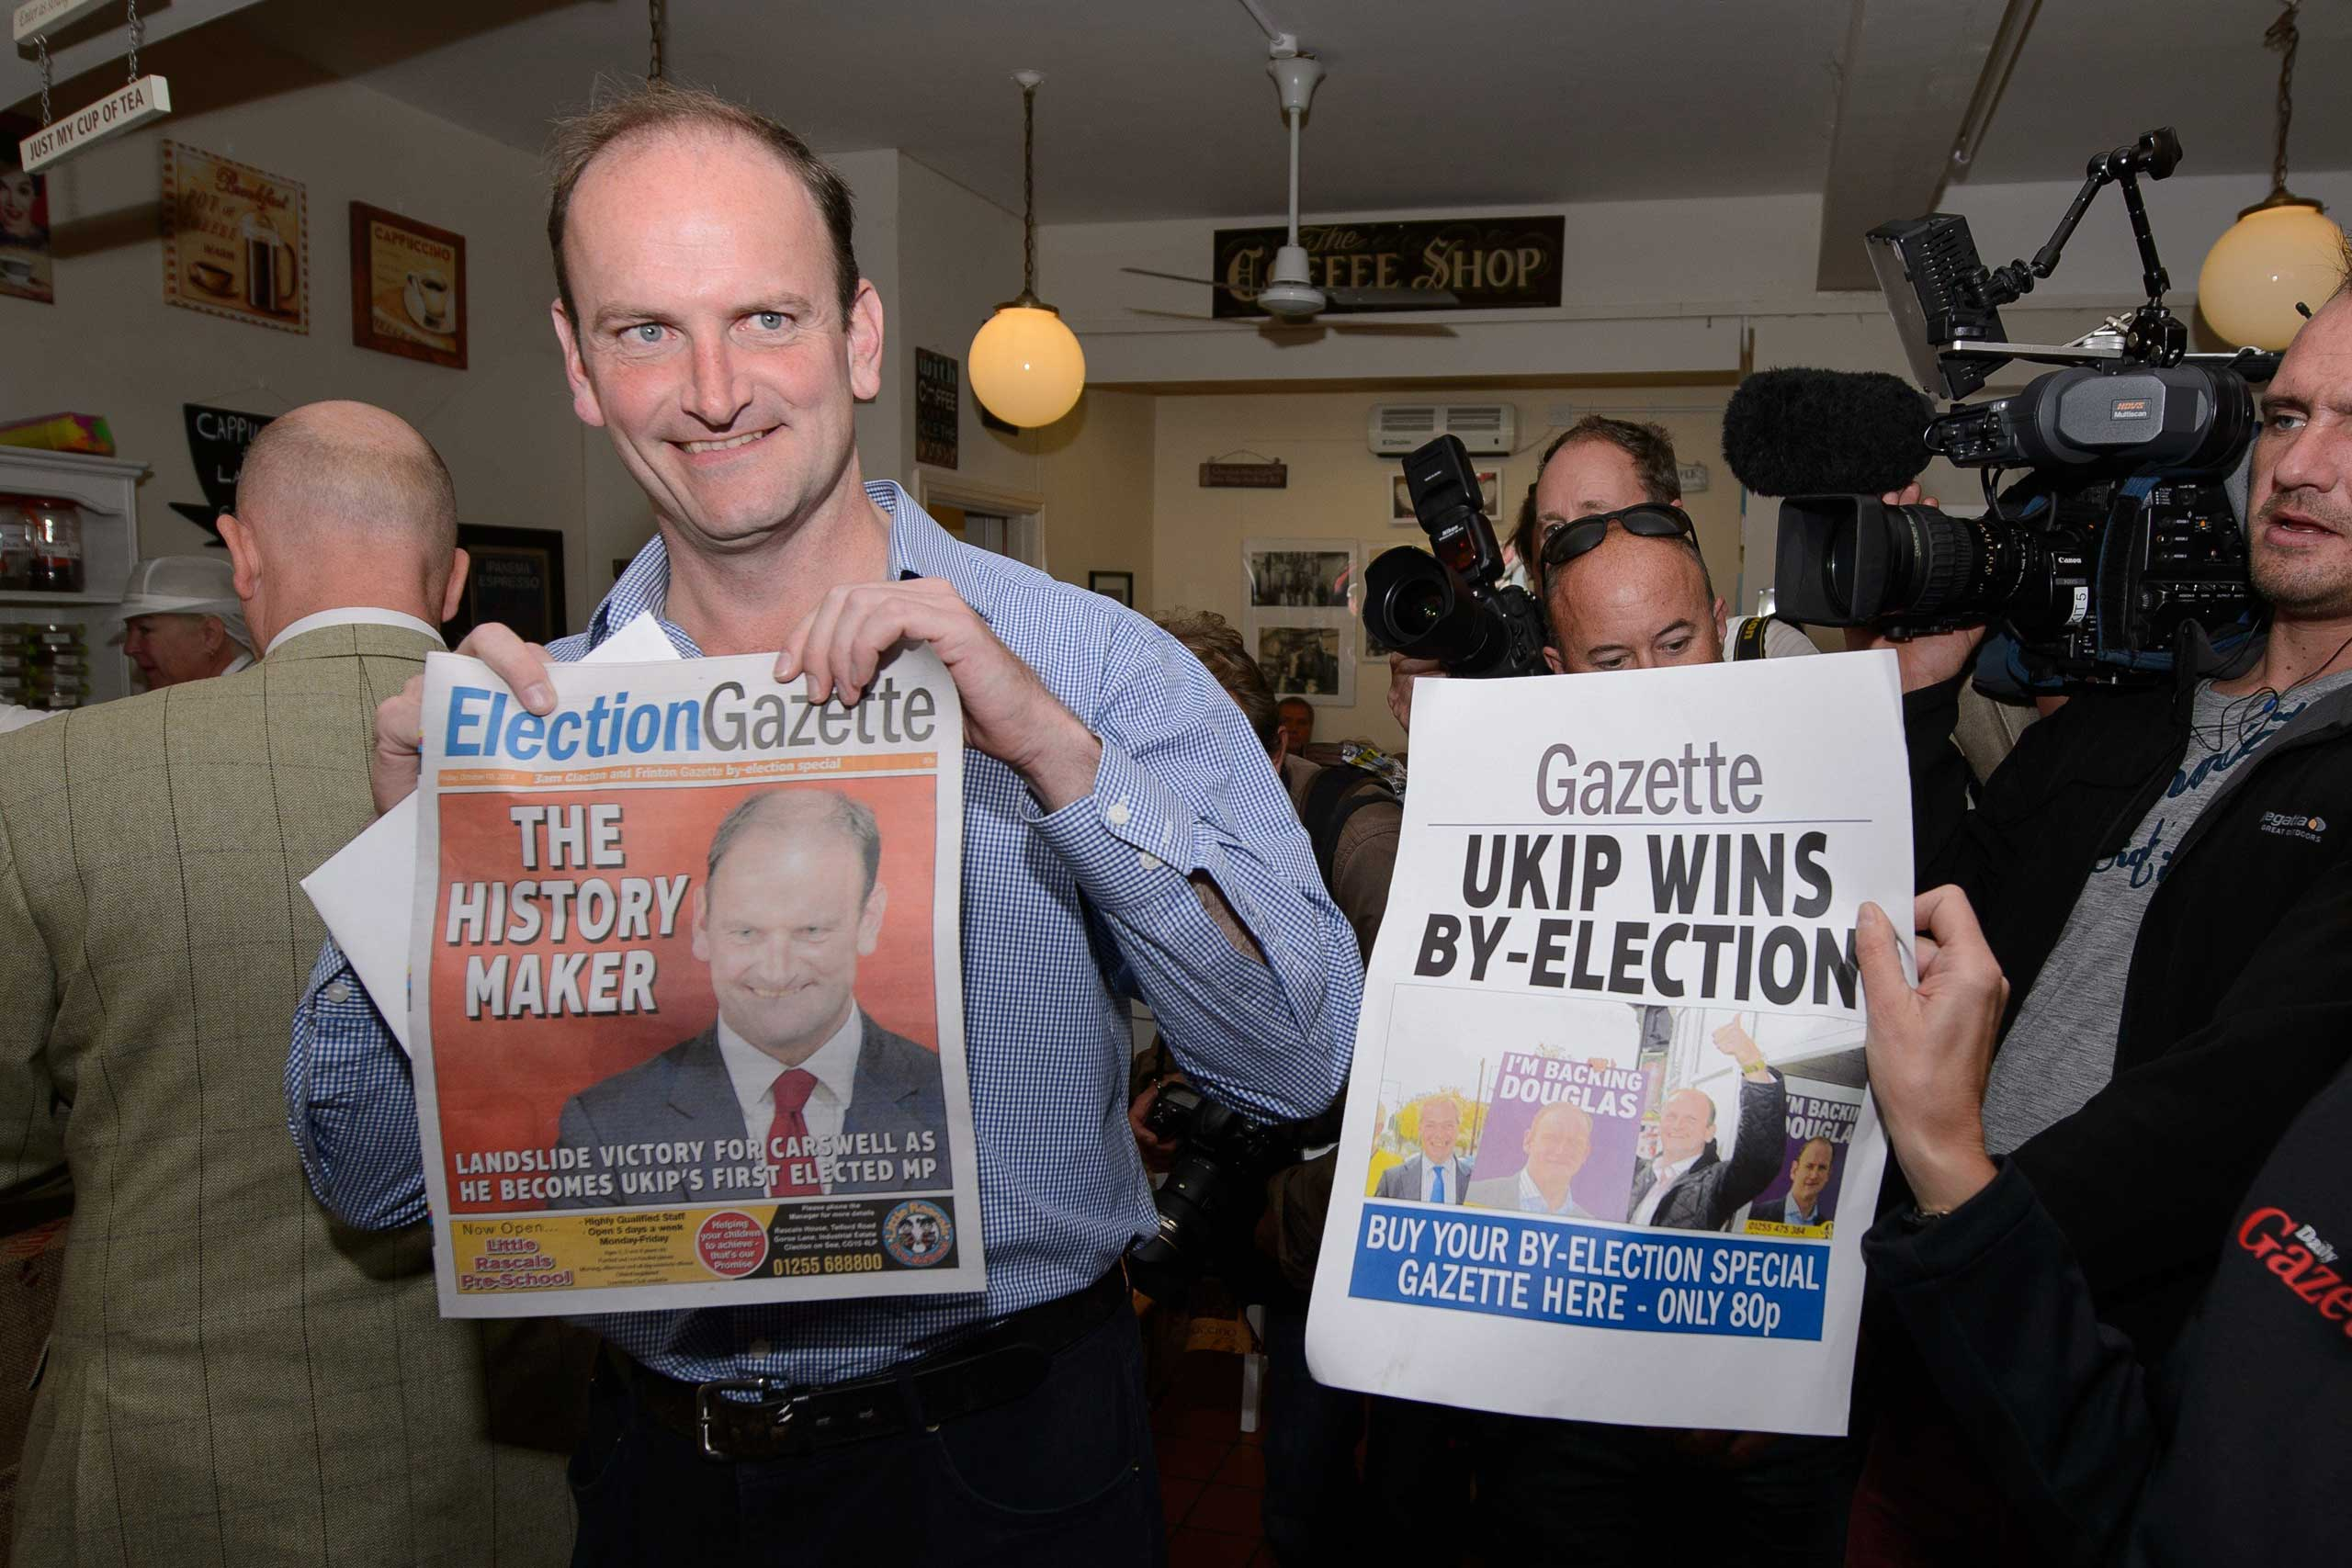 Newly-elected UK Independence Party MP Douglas Carswell poses for photographers with a copy of the local paper in Clacton-on-Sea, in eastern England, on Oct. 10, 2014.